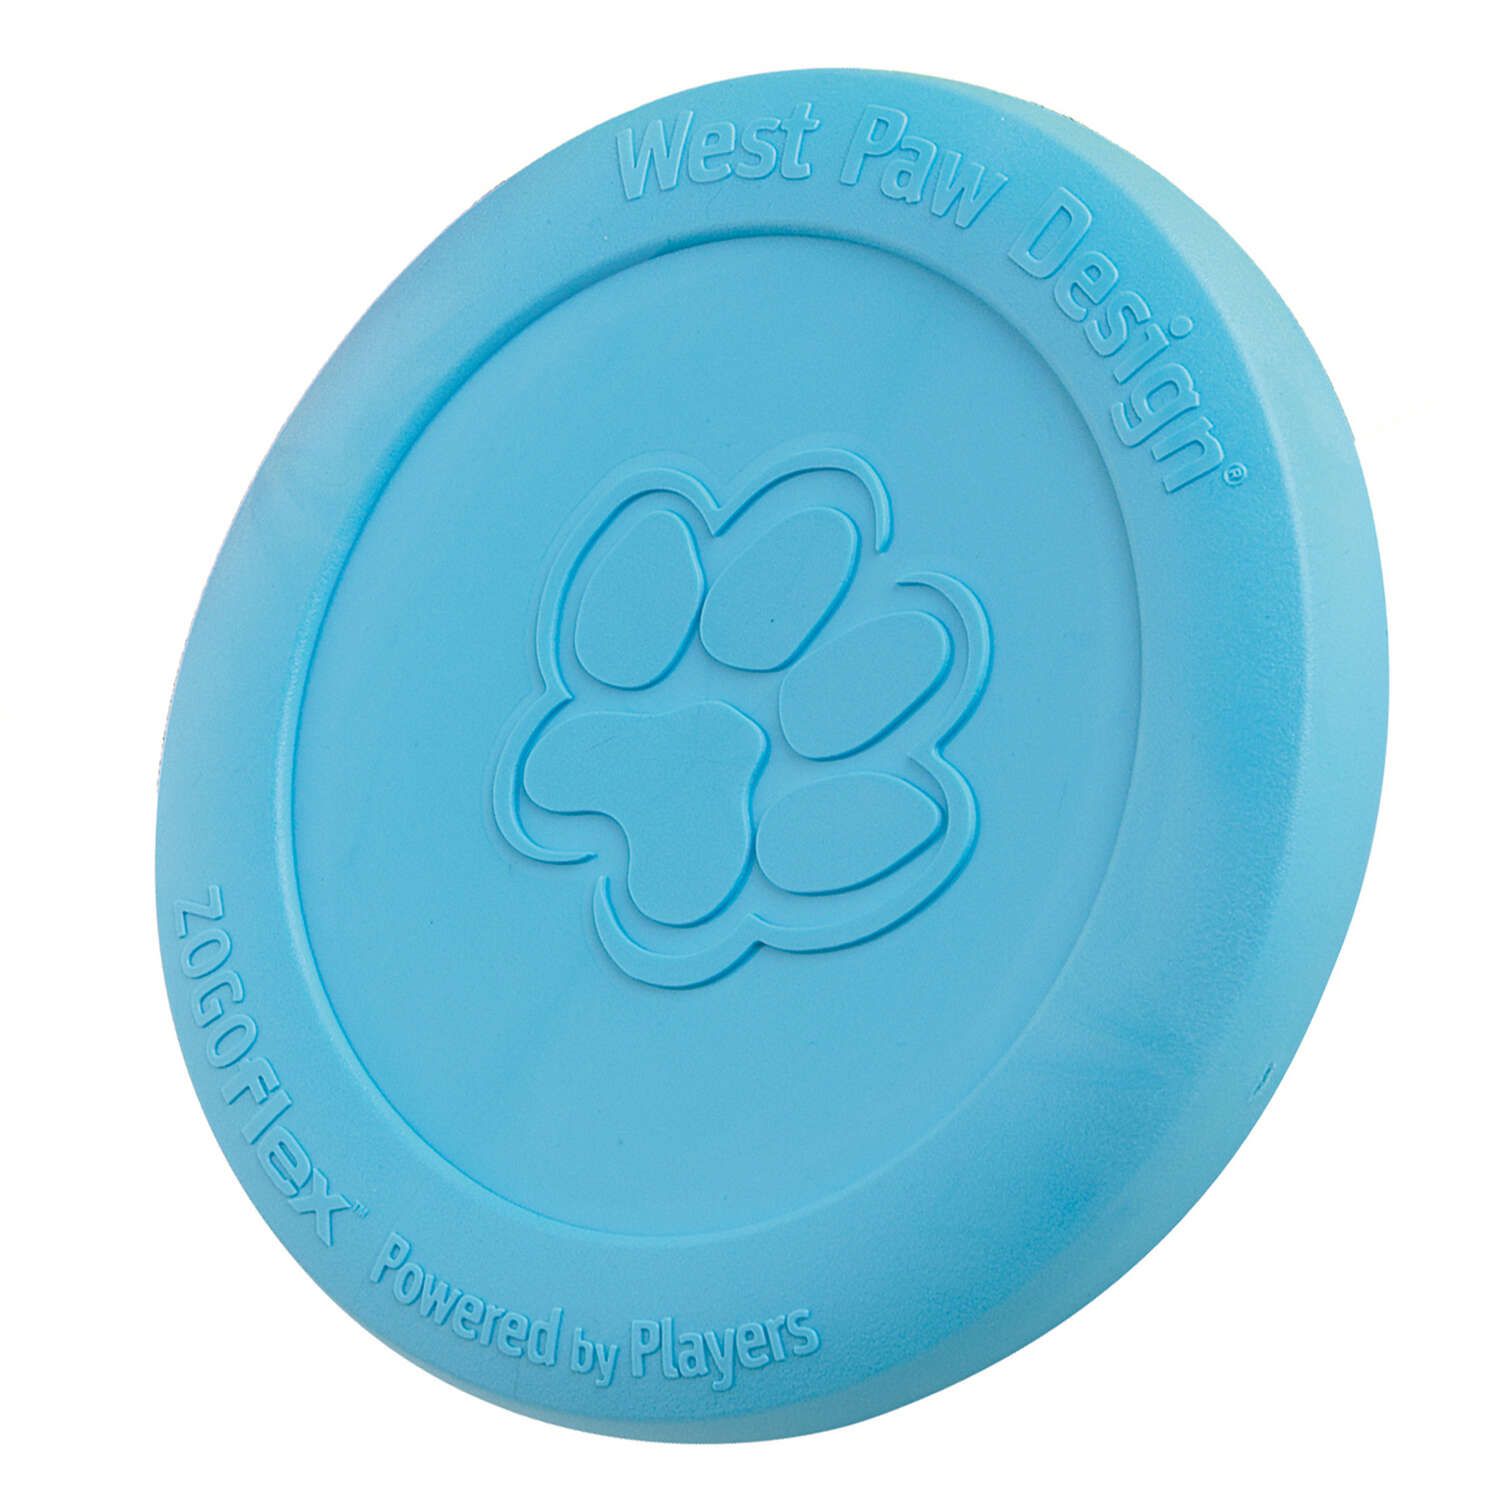 West Paw  Zogoflex  Blue  Synthetic Rubber  Frisbee  Large  Zisc Disc